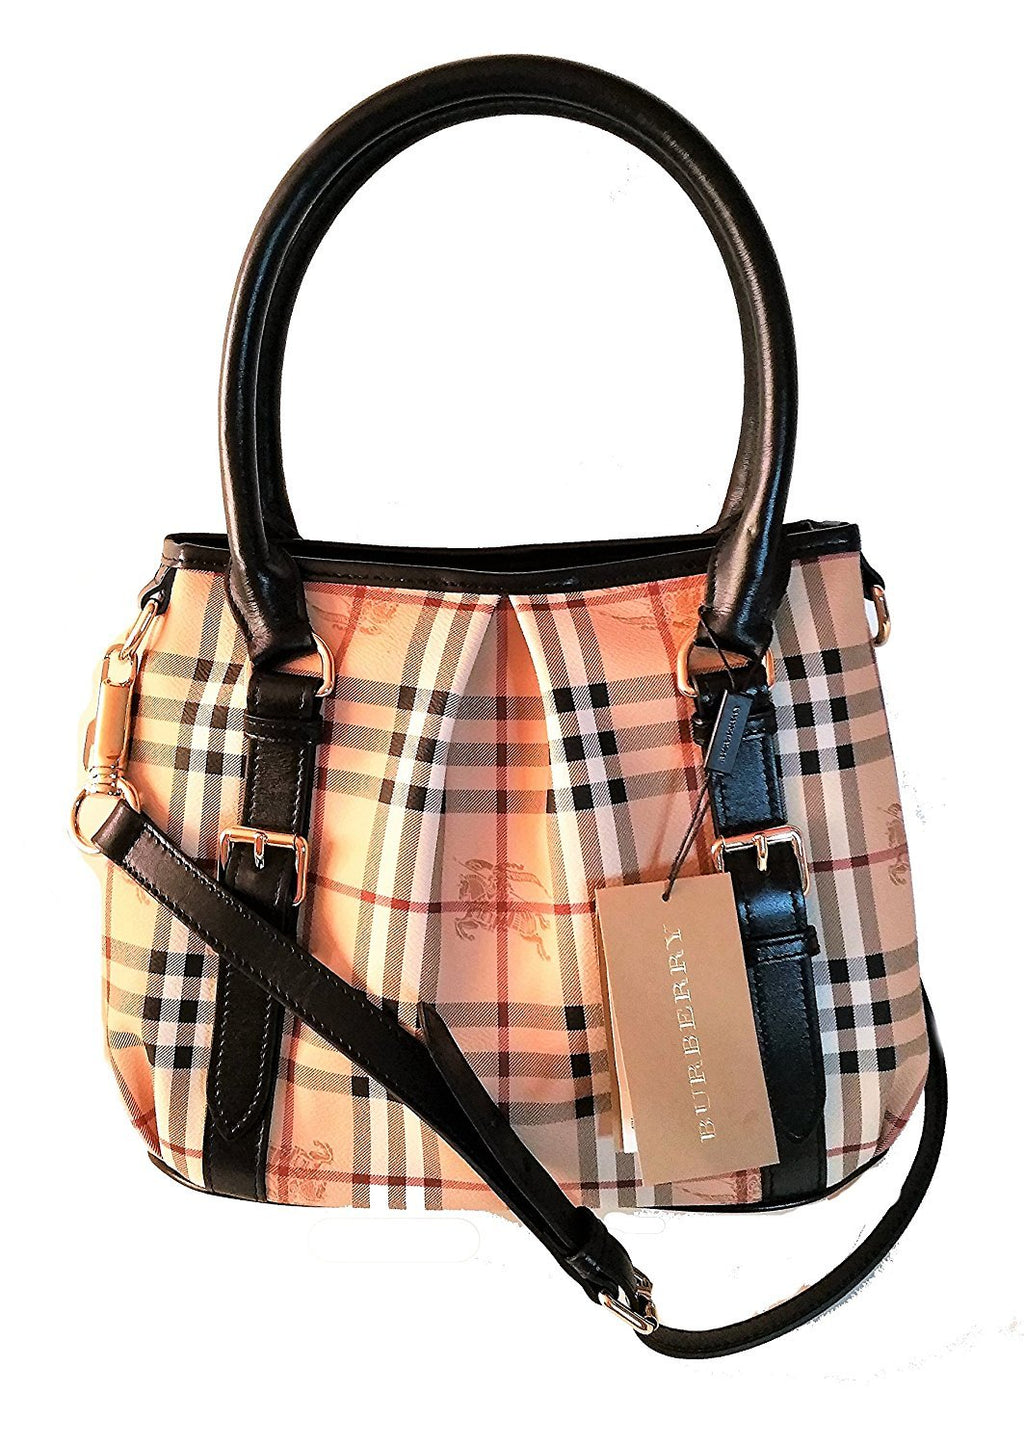 Scarpe Burberry Haymarket Northfield Tote Bag Marche Famose